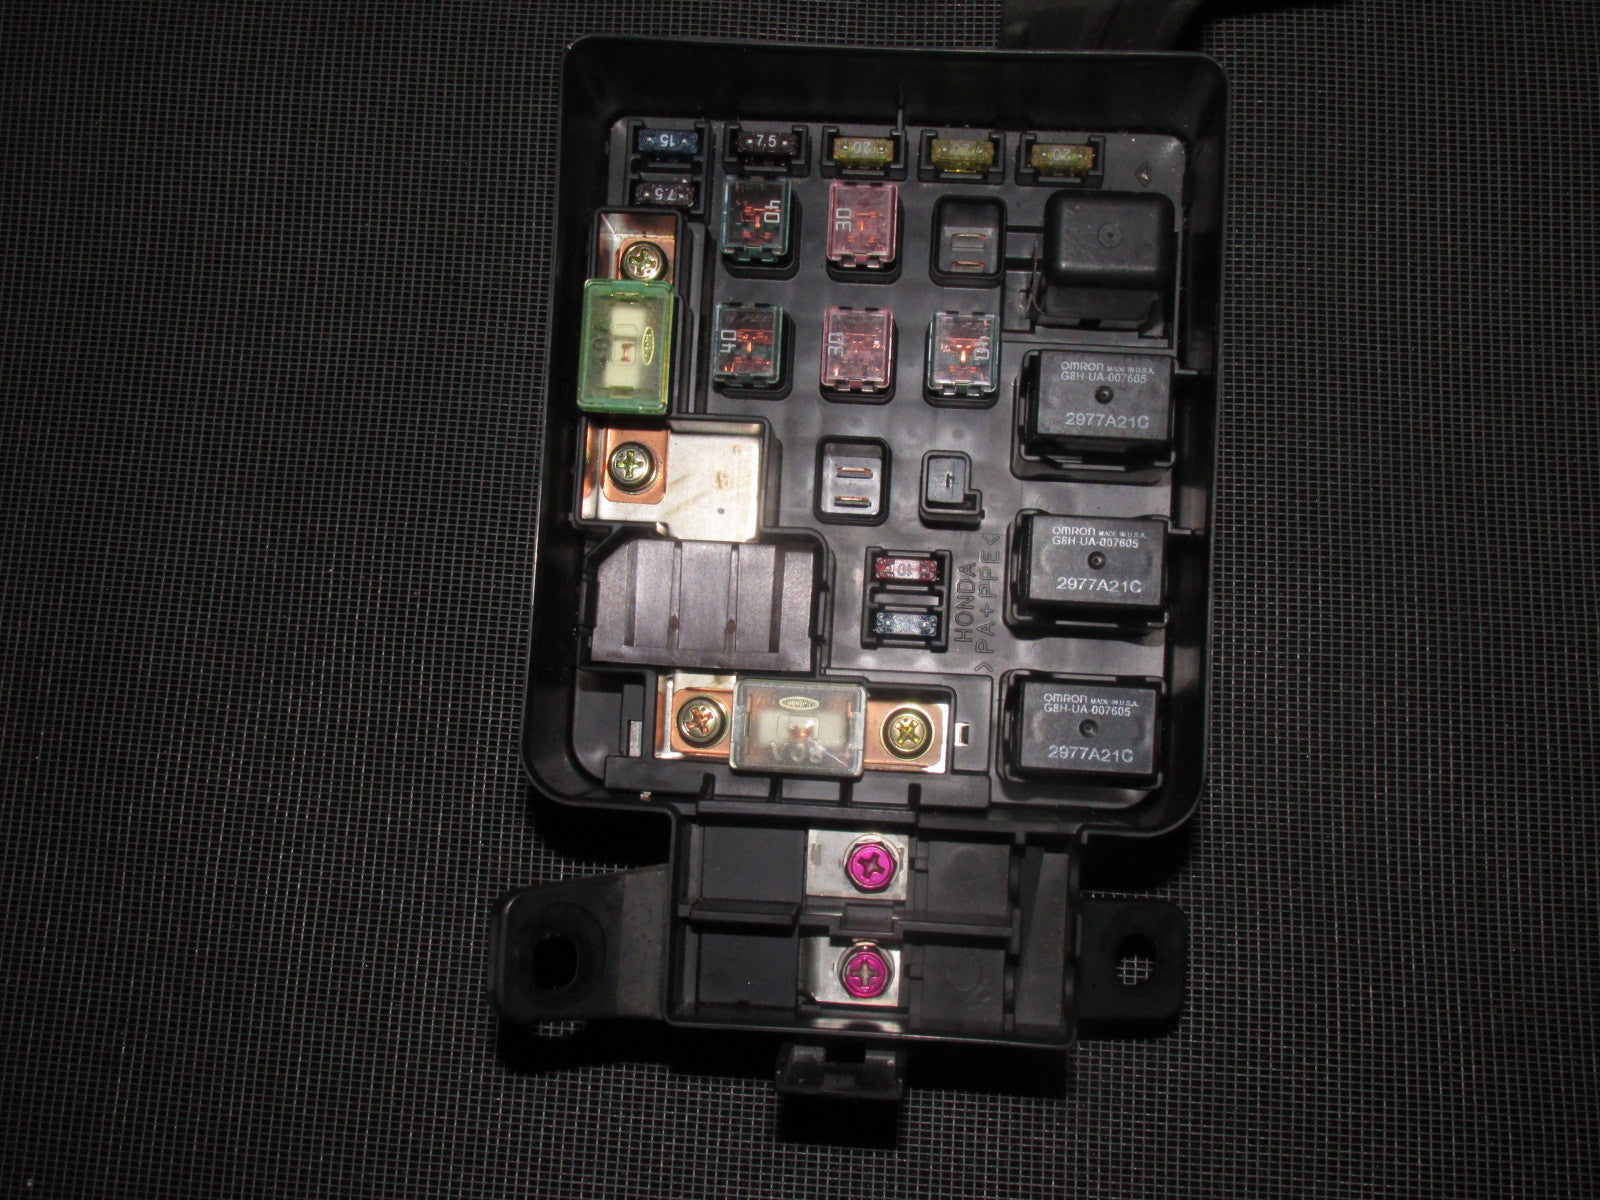 ... 96 97 98 99 00 Honda Civic OEM Engine Fuse Box